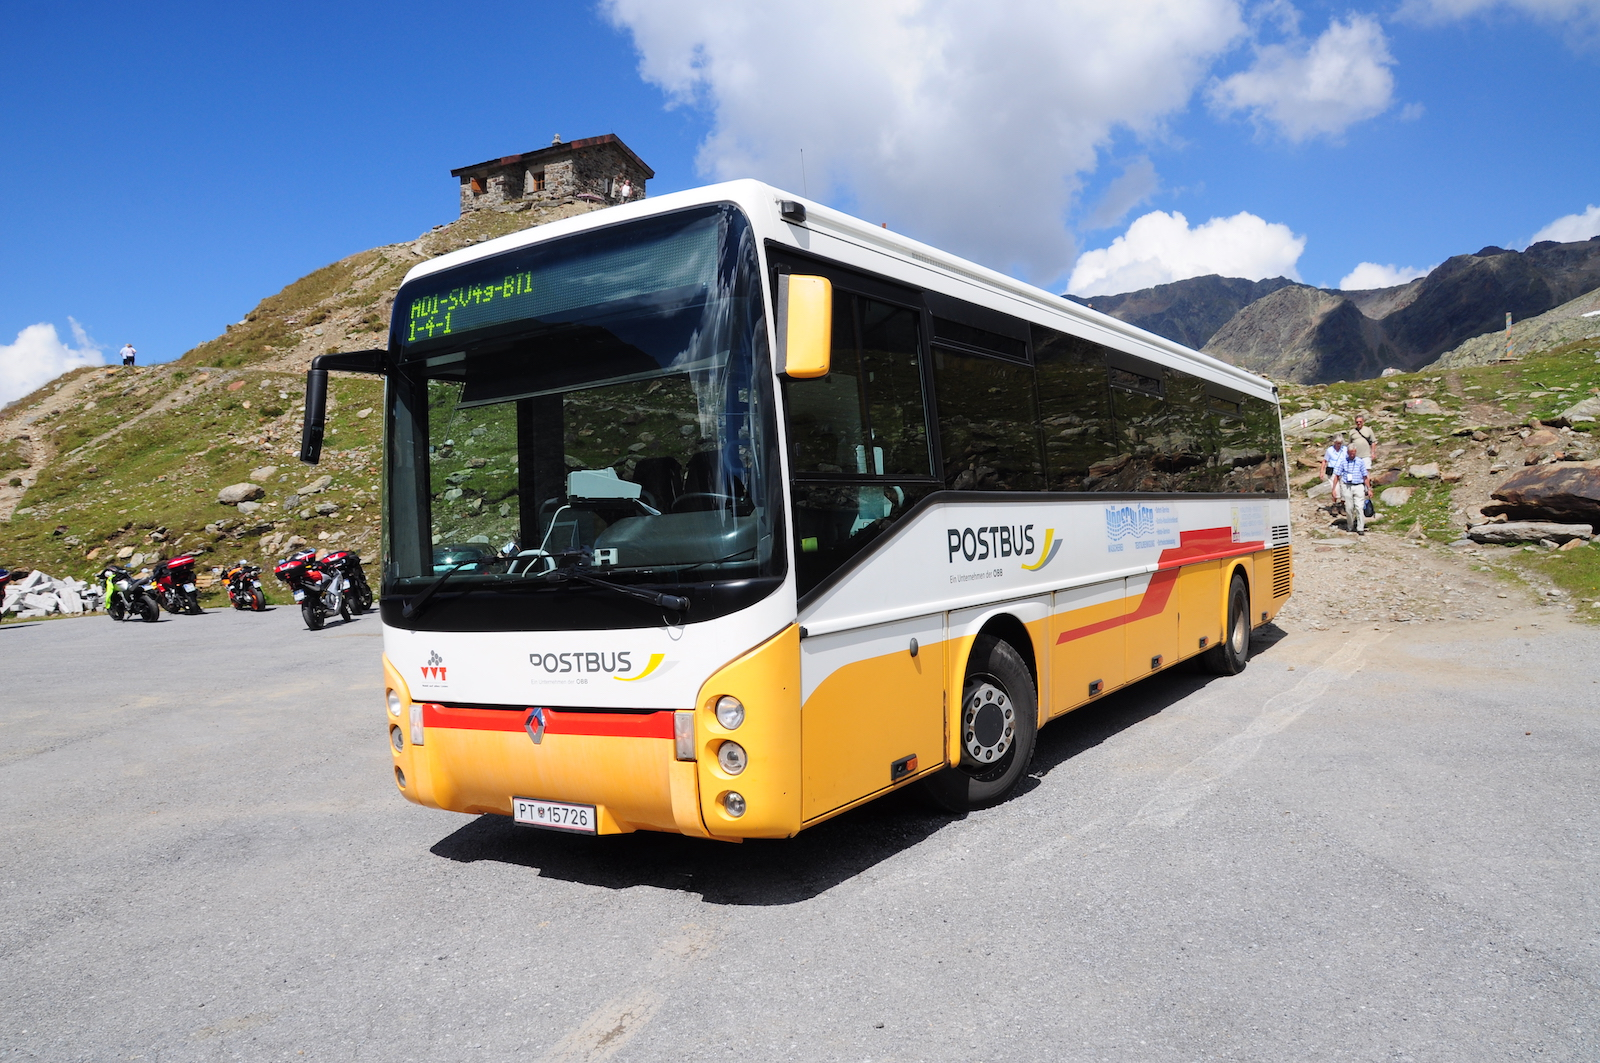 Bus of Austria